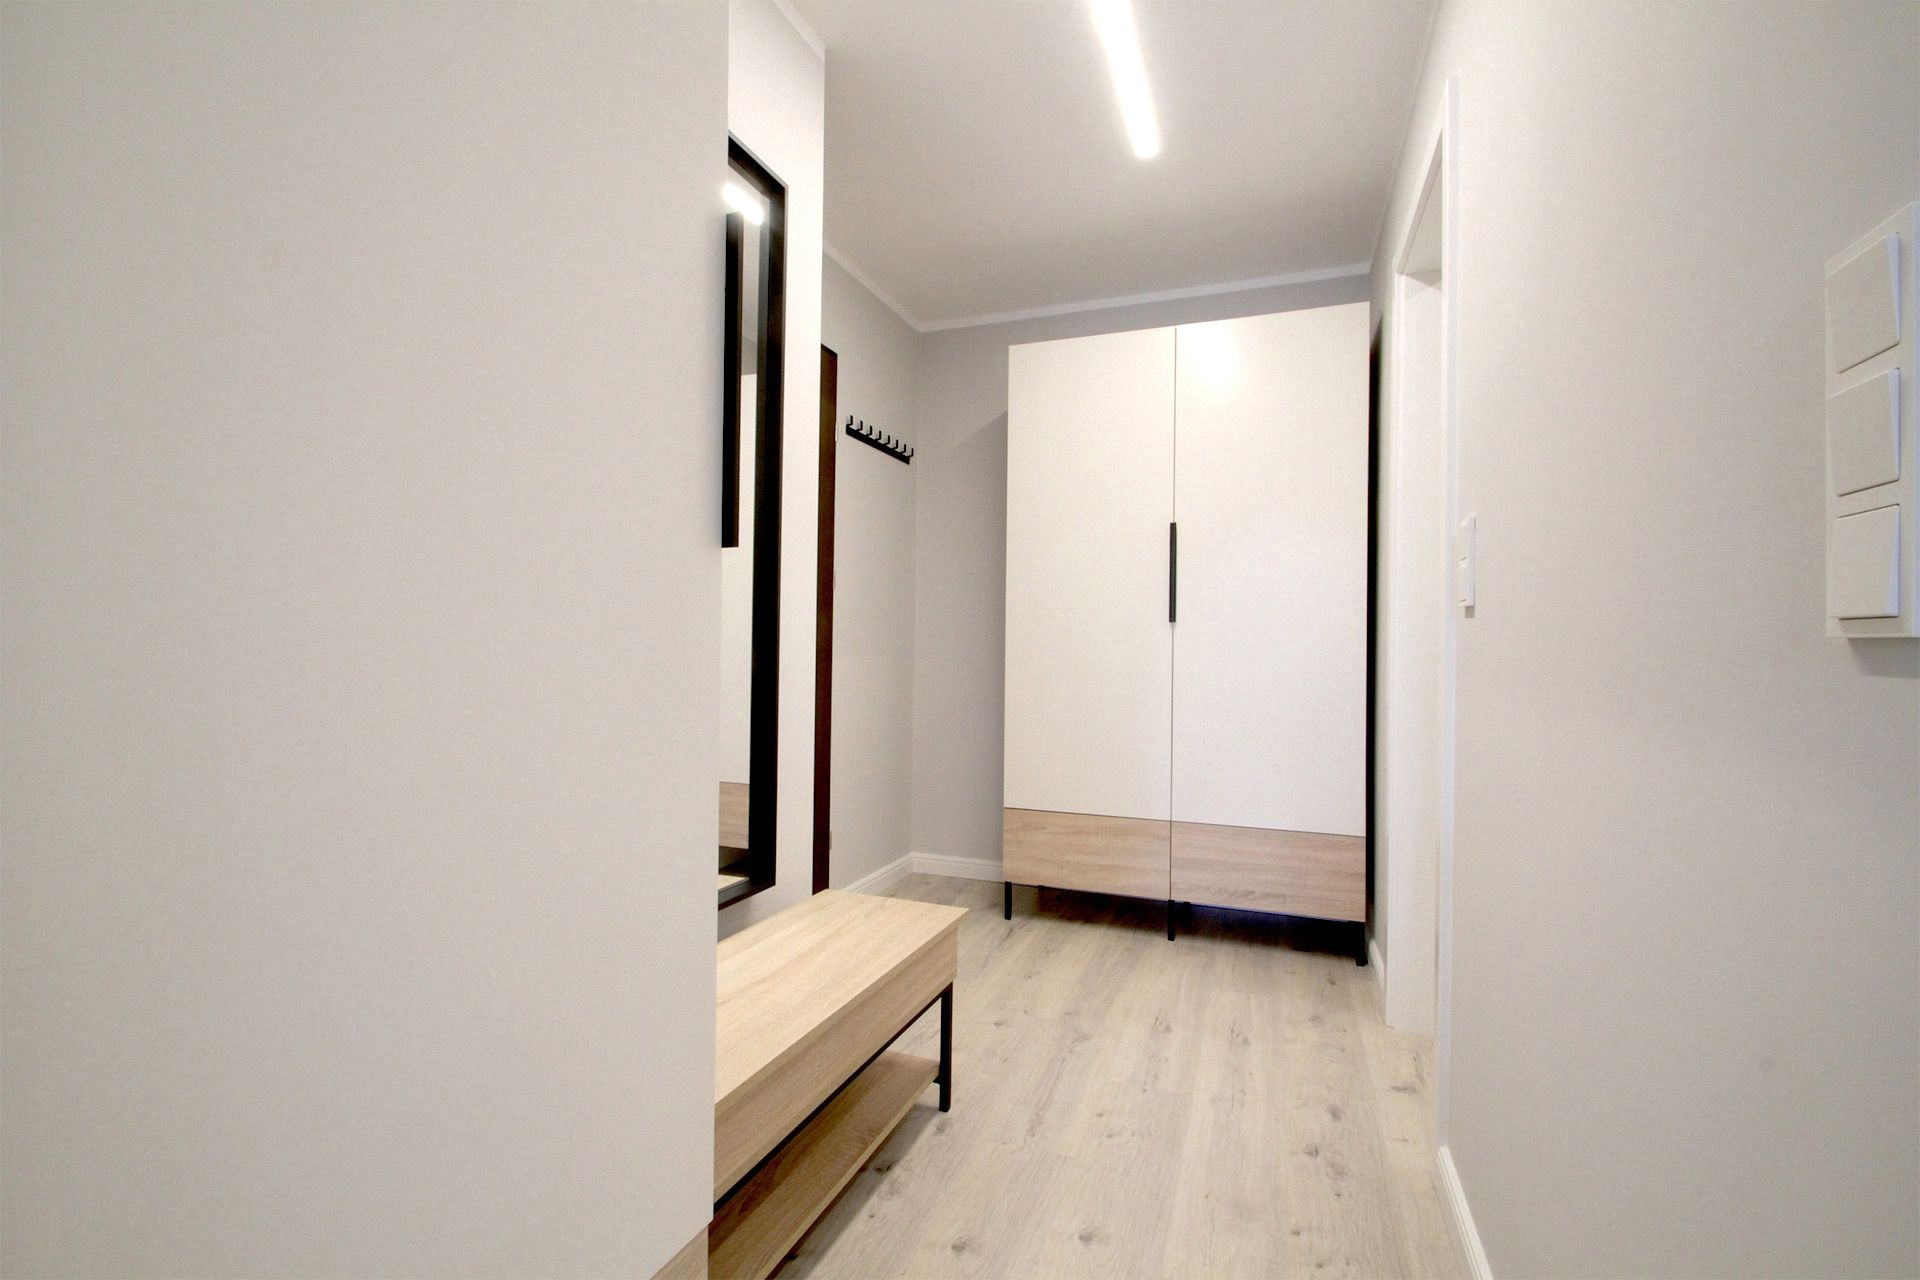 Studio - Medium apartment to rent in Warsaw UPR-A-008-1